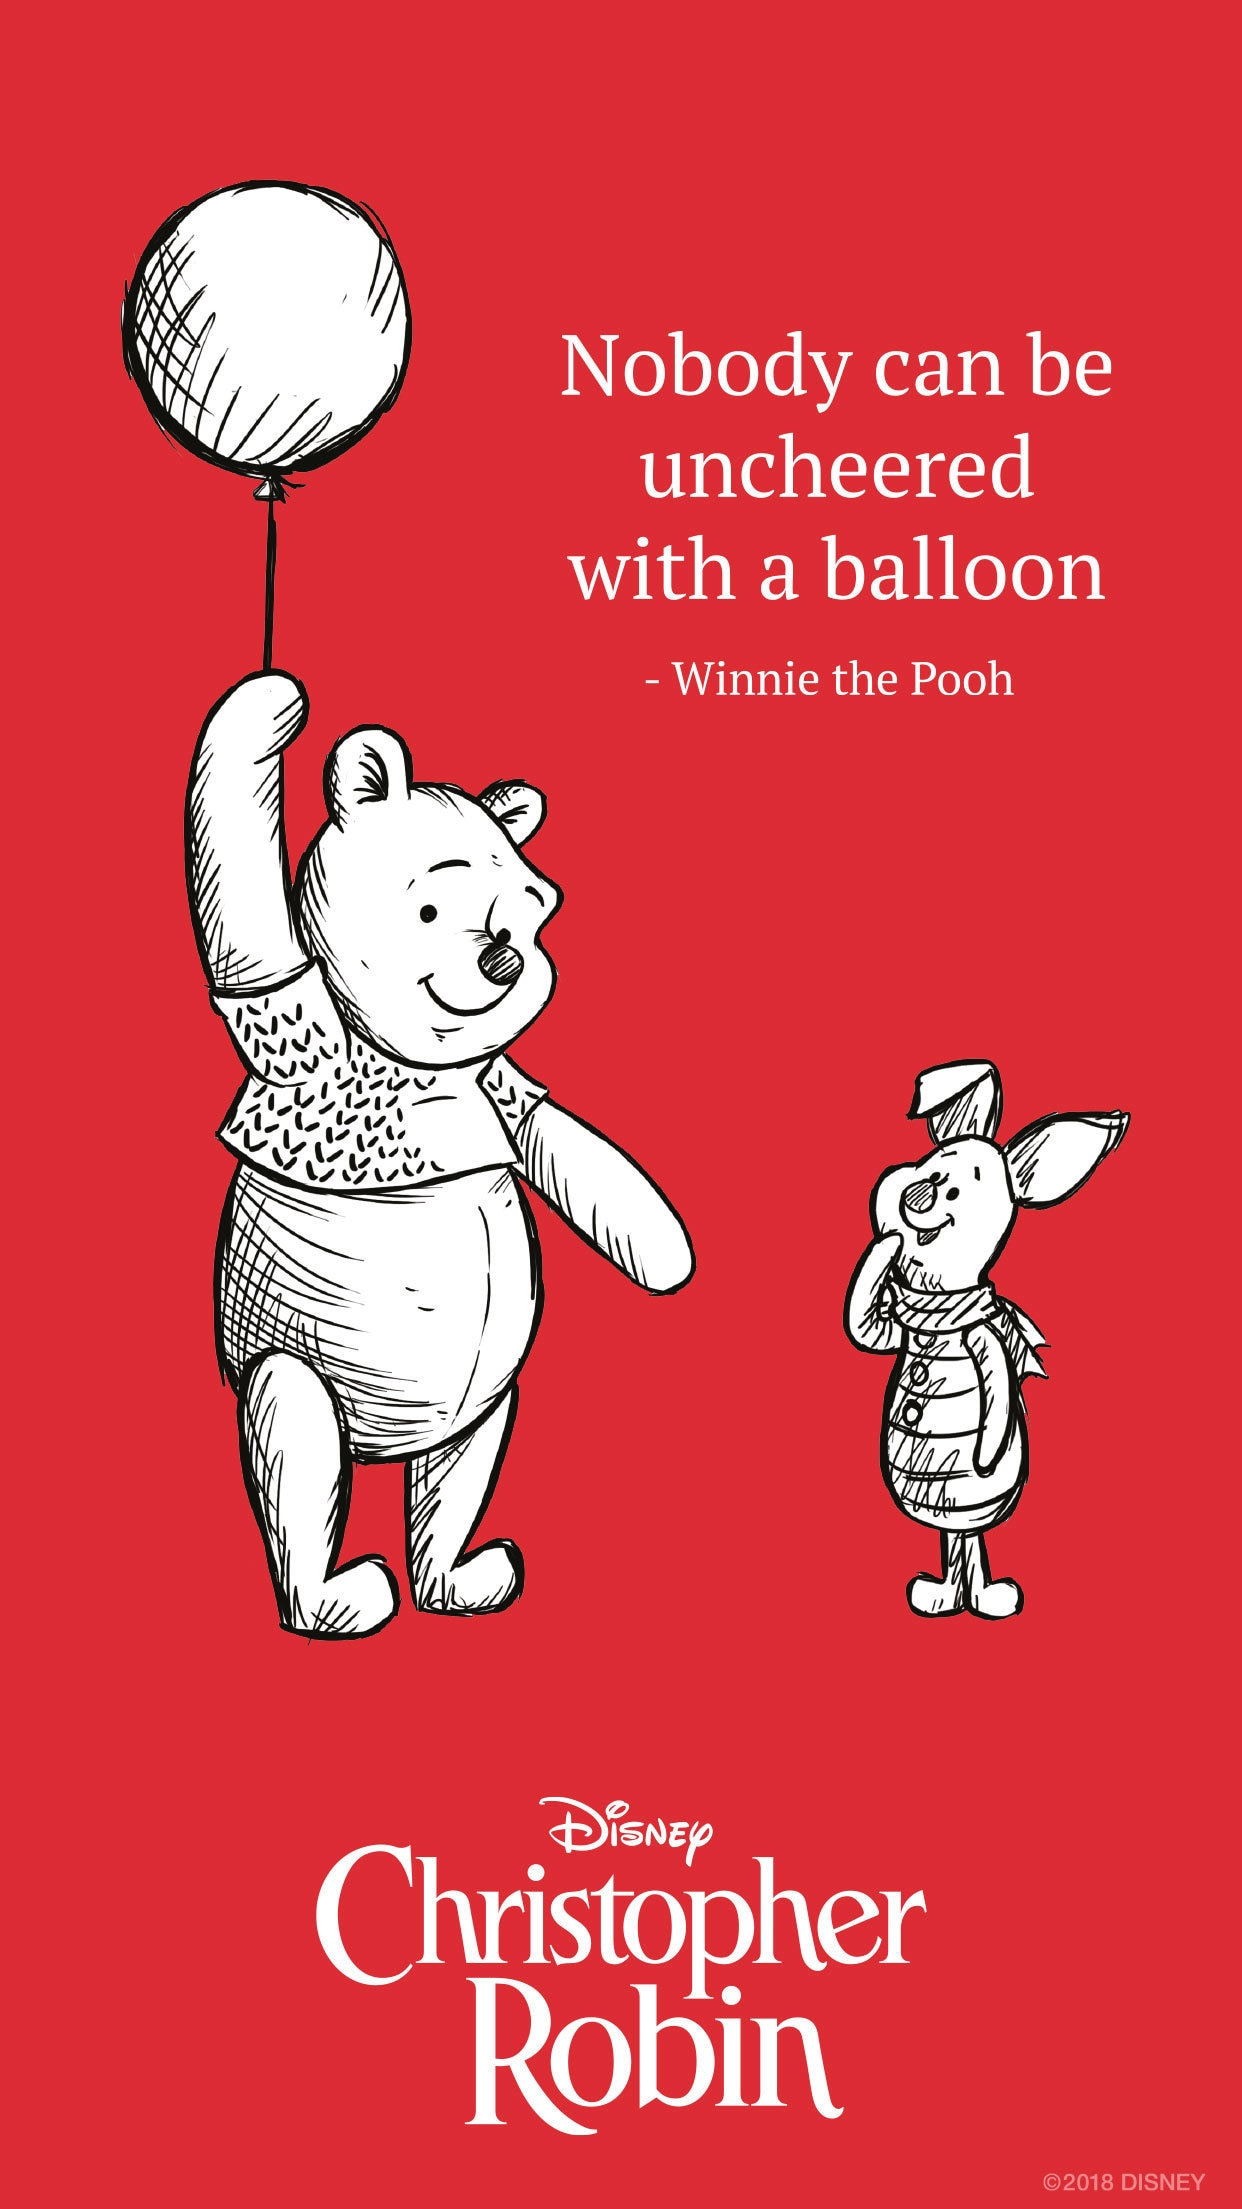 7 Pooh Isms That Are Essential To Everyday Life